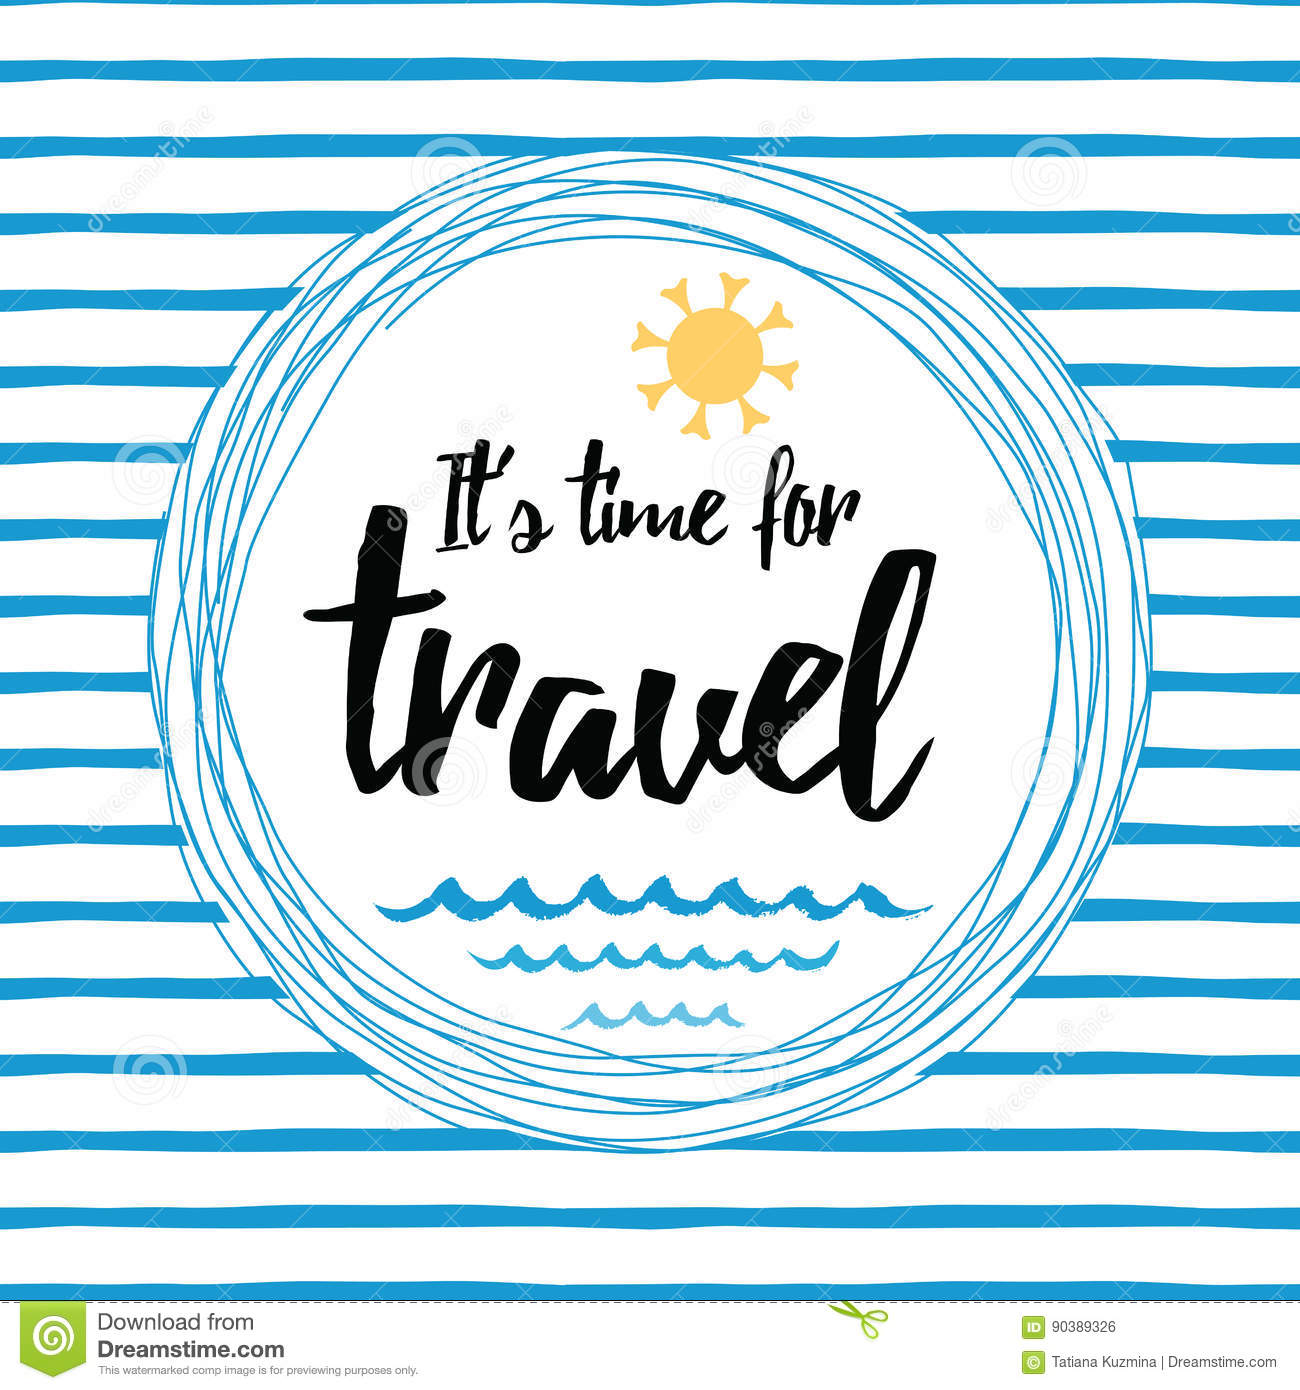 Travel striped typographic card with inspirational quote, sun, sea waves, ocean